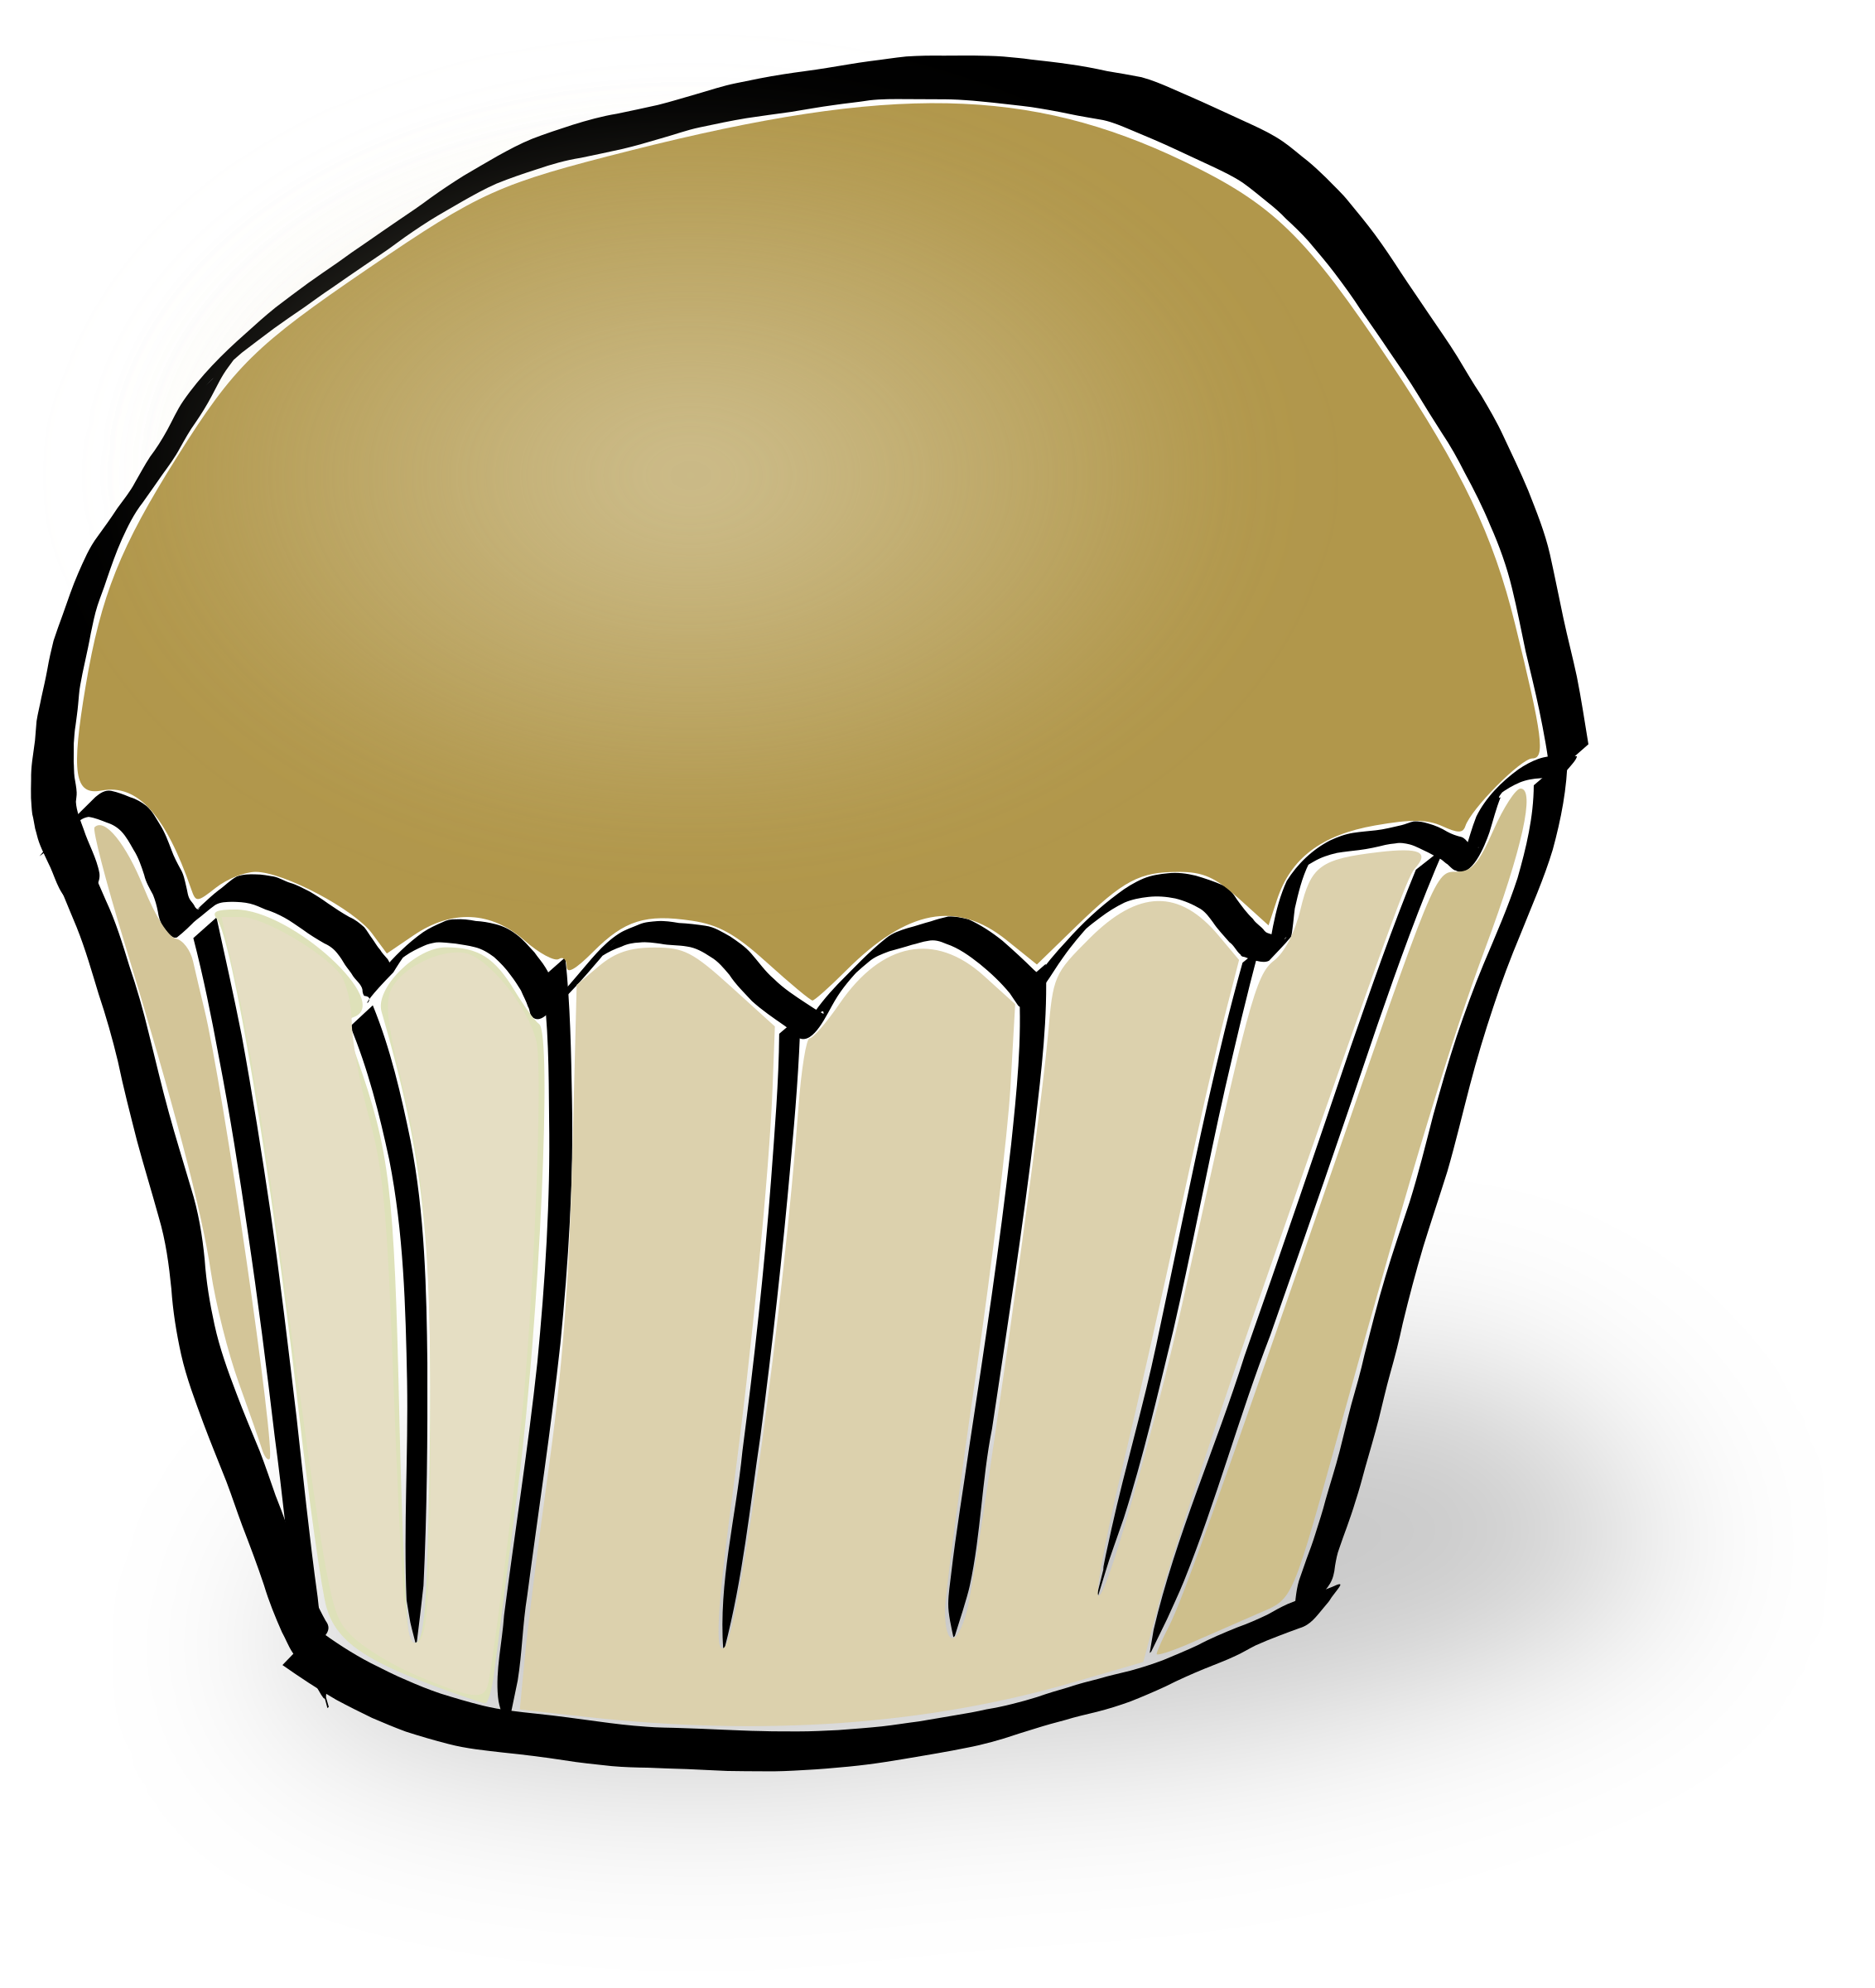 2264x2400 Blueberry Muffin Clipart Five